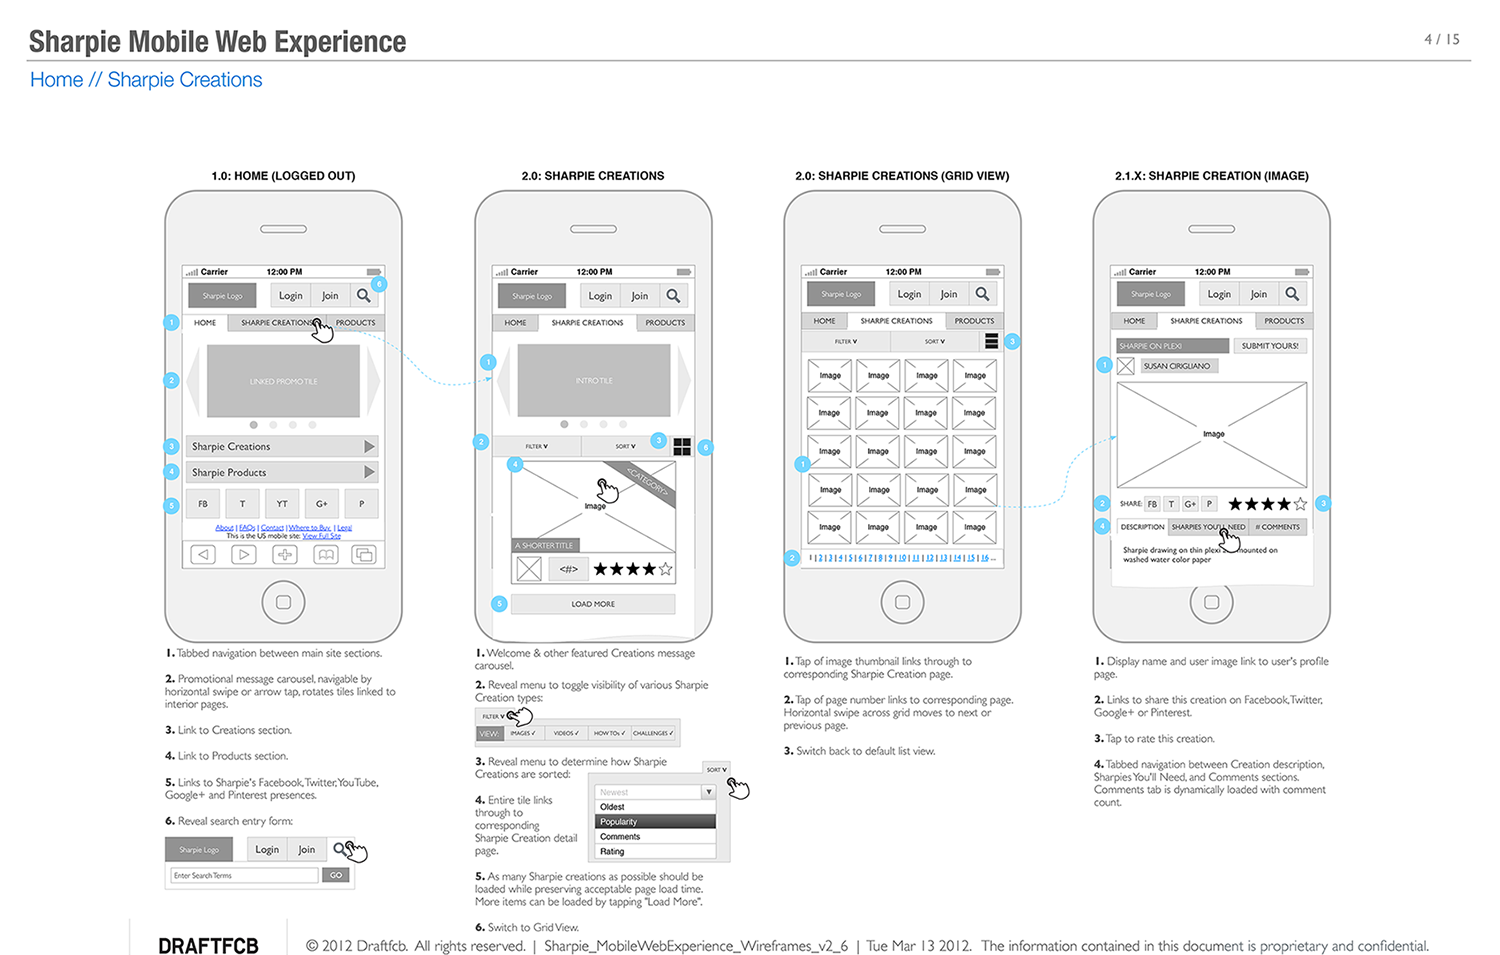 Sharpie_Mobile_Wireframes_v2_6-15_0003_4.png